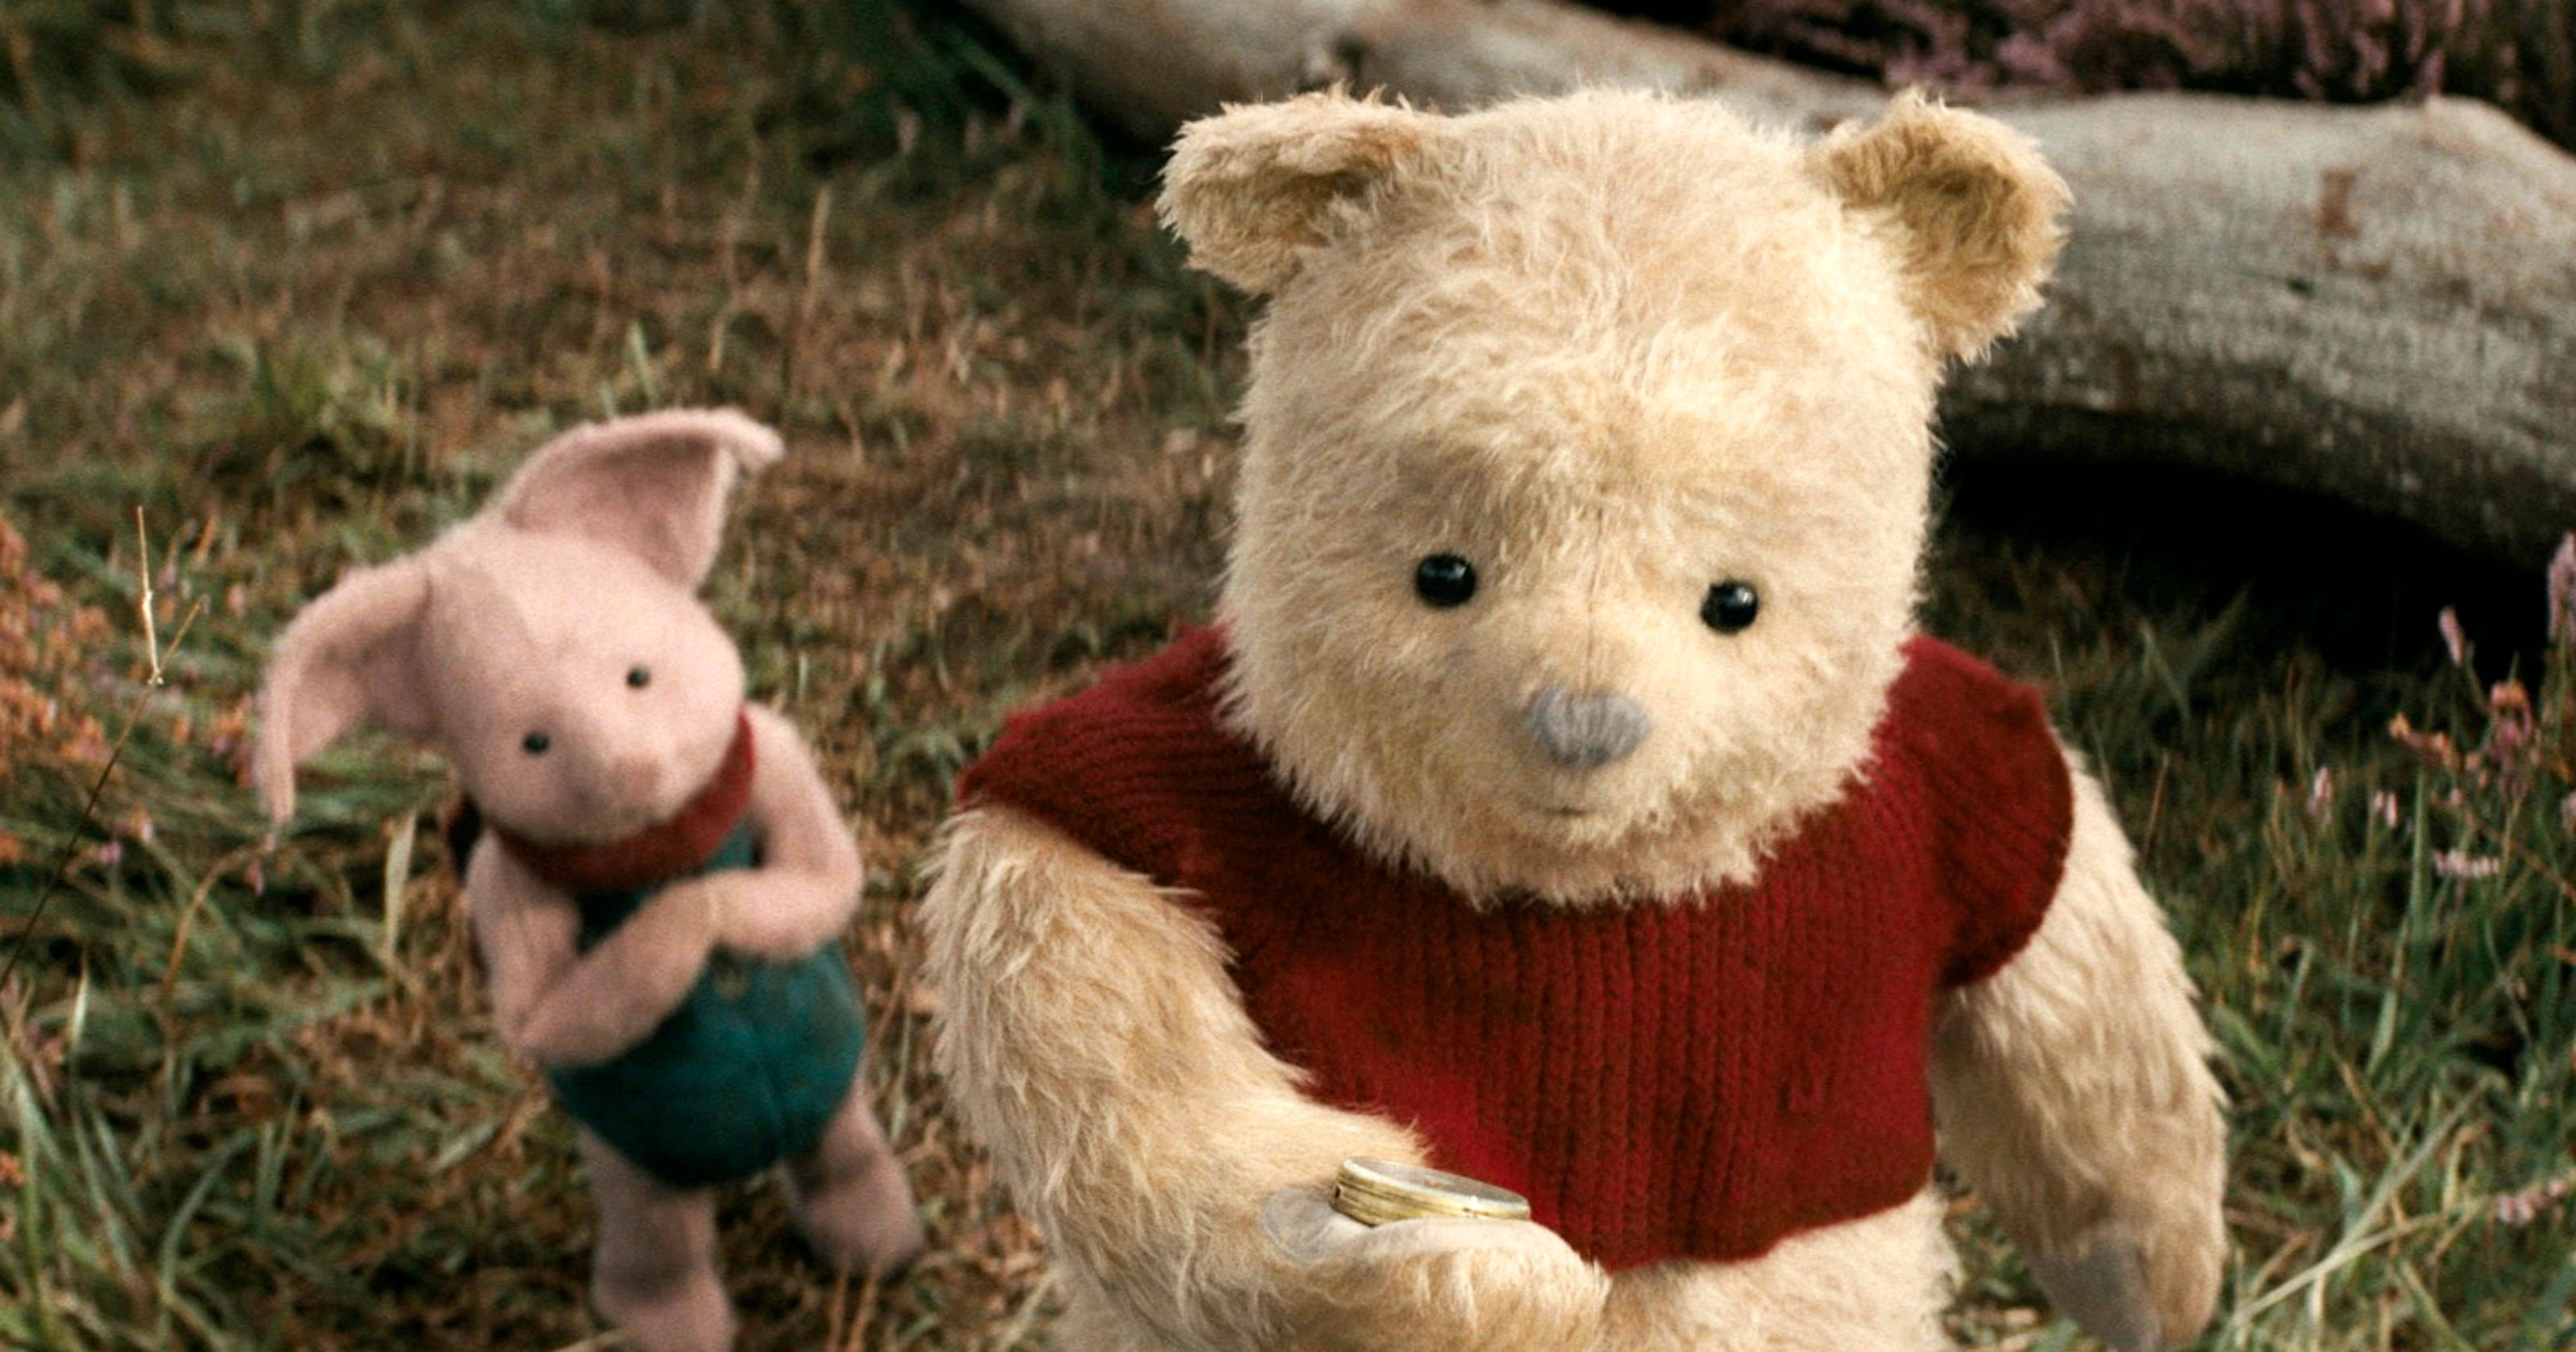 c876a2cac0b5 Why Winnie the Pooh is the living-in-the-moment hero we need right now